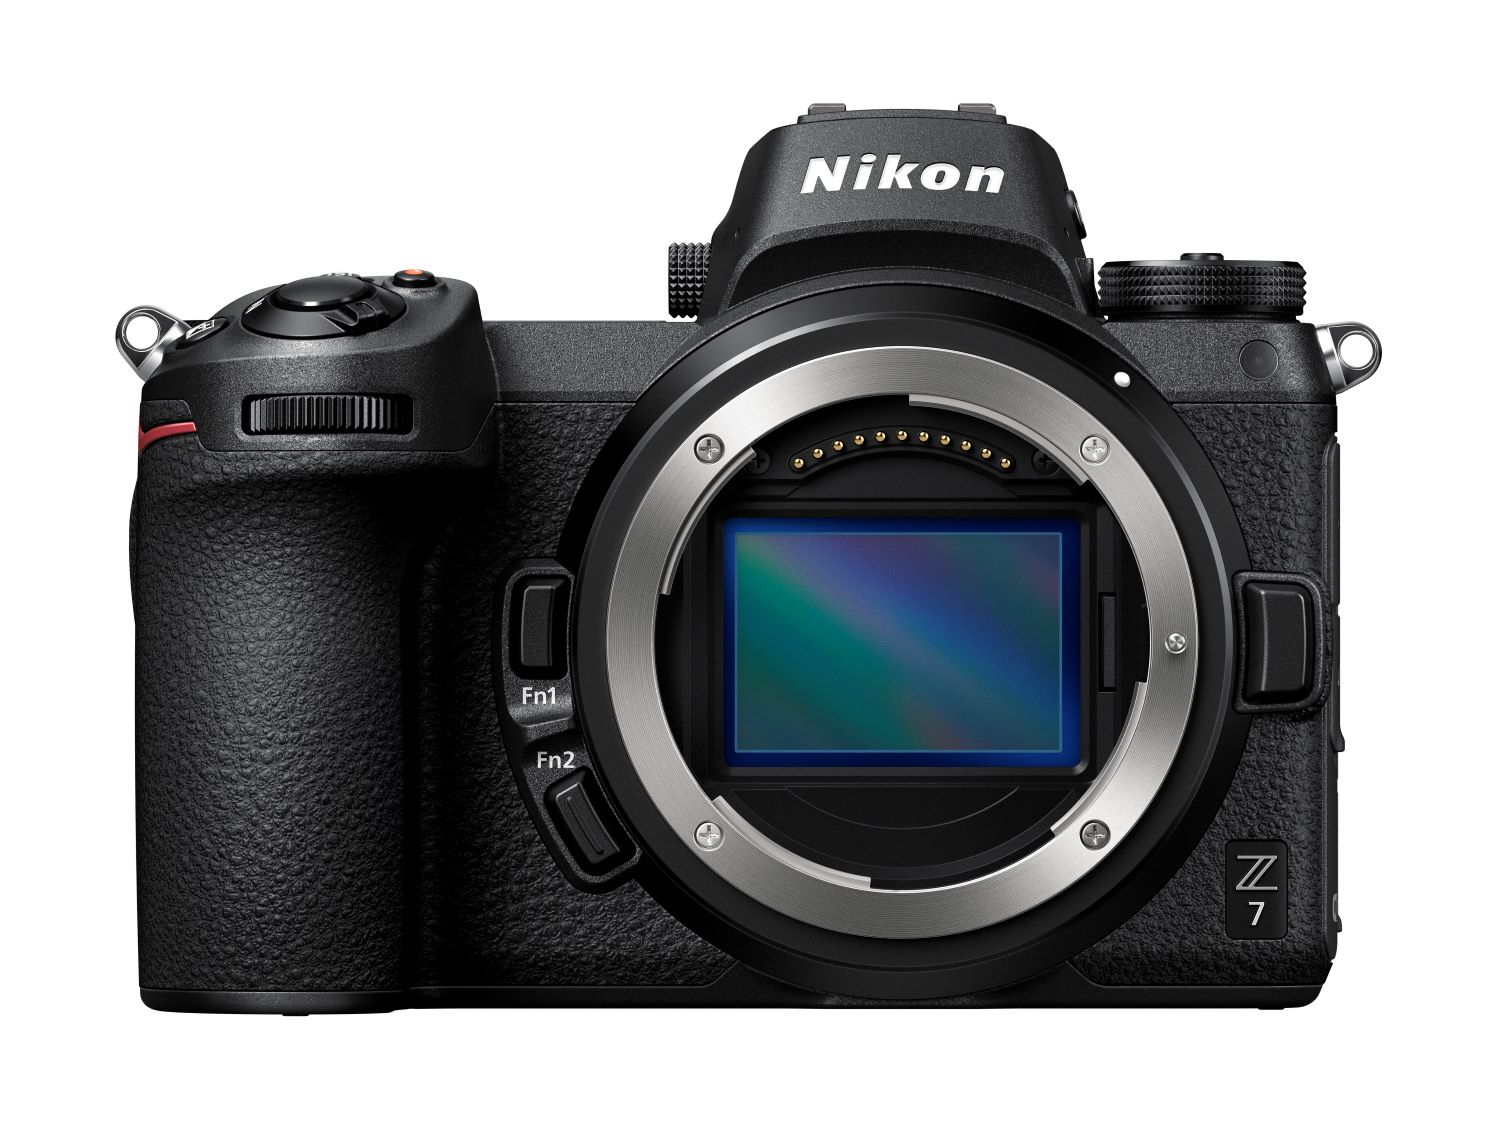 https://i1.wp.com/digital-photography-school.com/wp-content/uploads/2020/03/Nikon-Z8-Rumor.jpg?resize=1500%2C1125&ssl=1